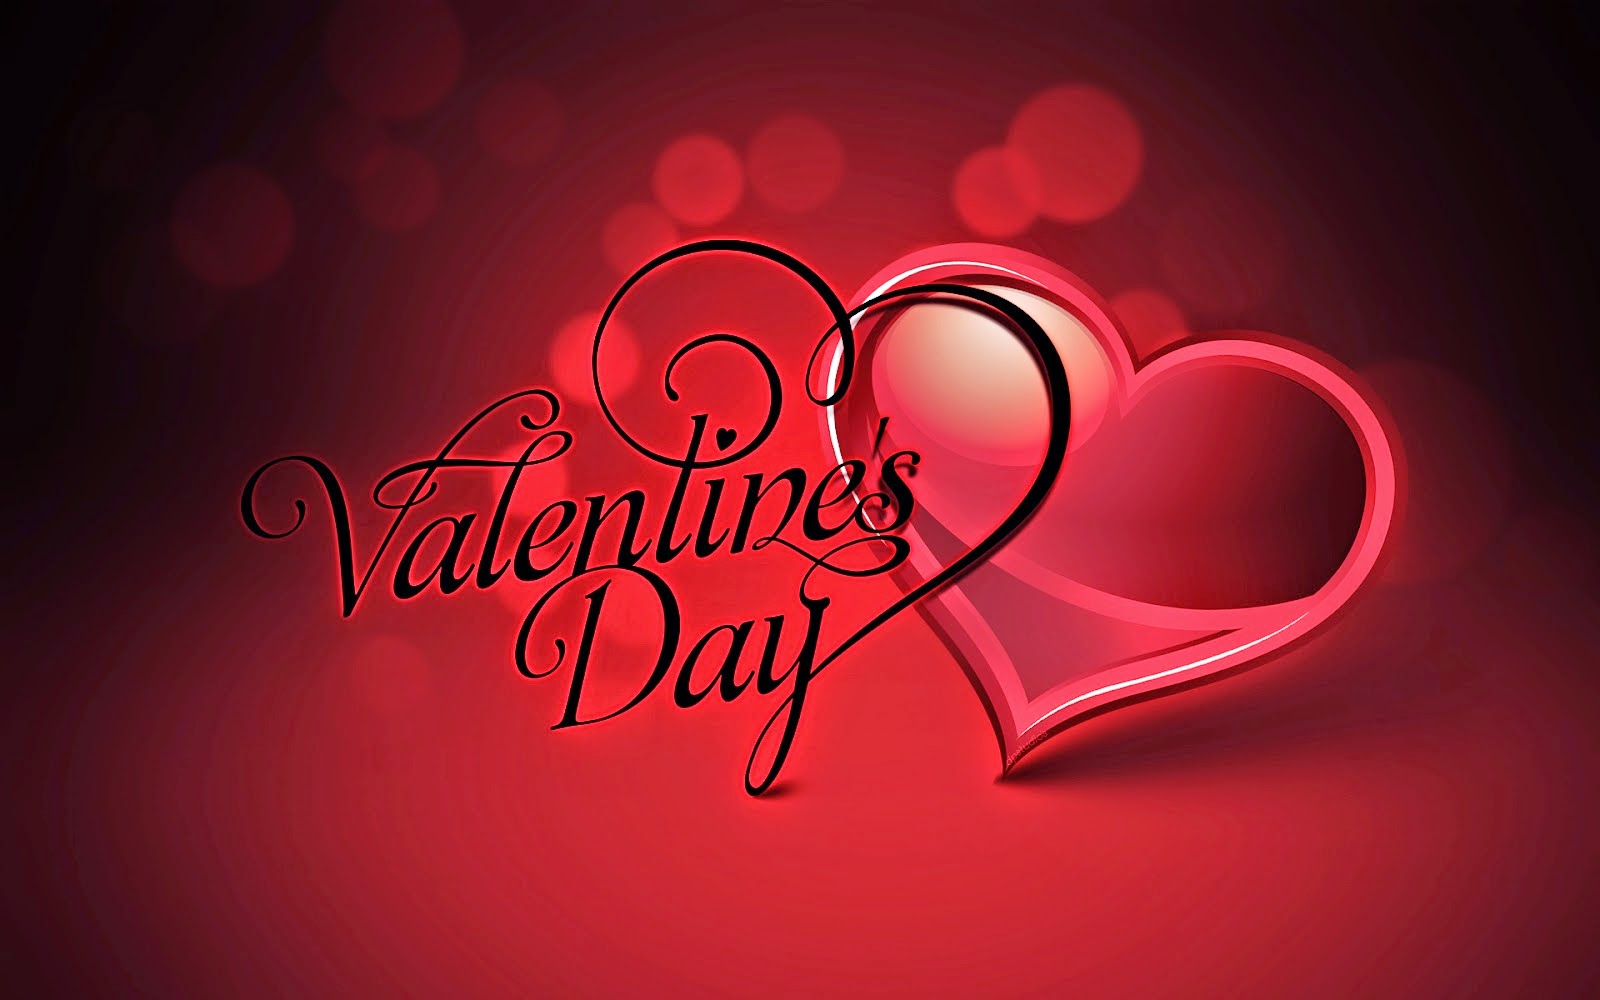 High resolutions 2015 valentines days wallpapers - Valentines day background wallpaper ...